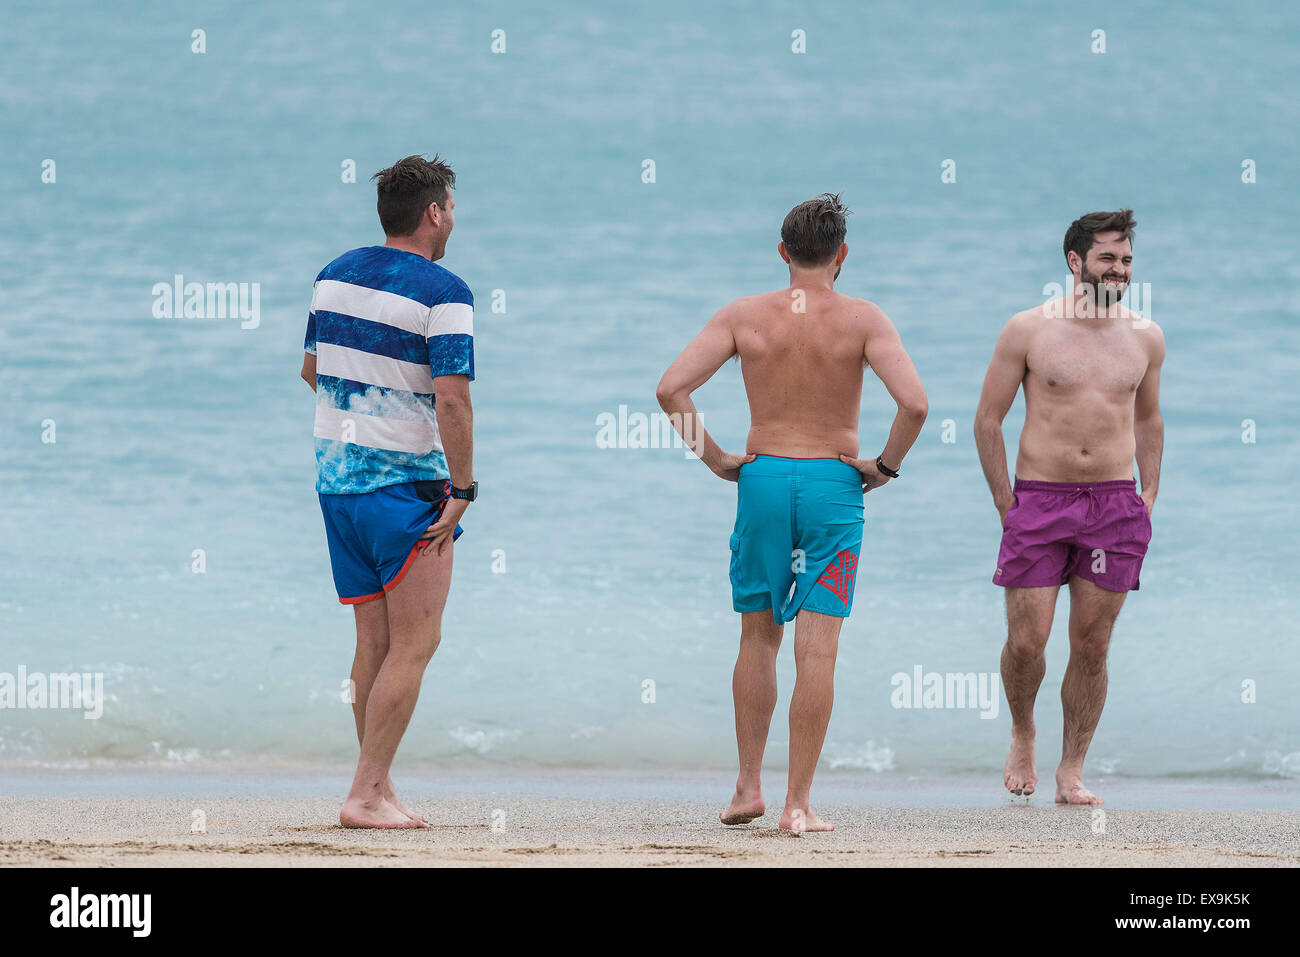 Three holidaymakers on Fistral beach in Newquay, Cornwall. - Stock Image